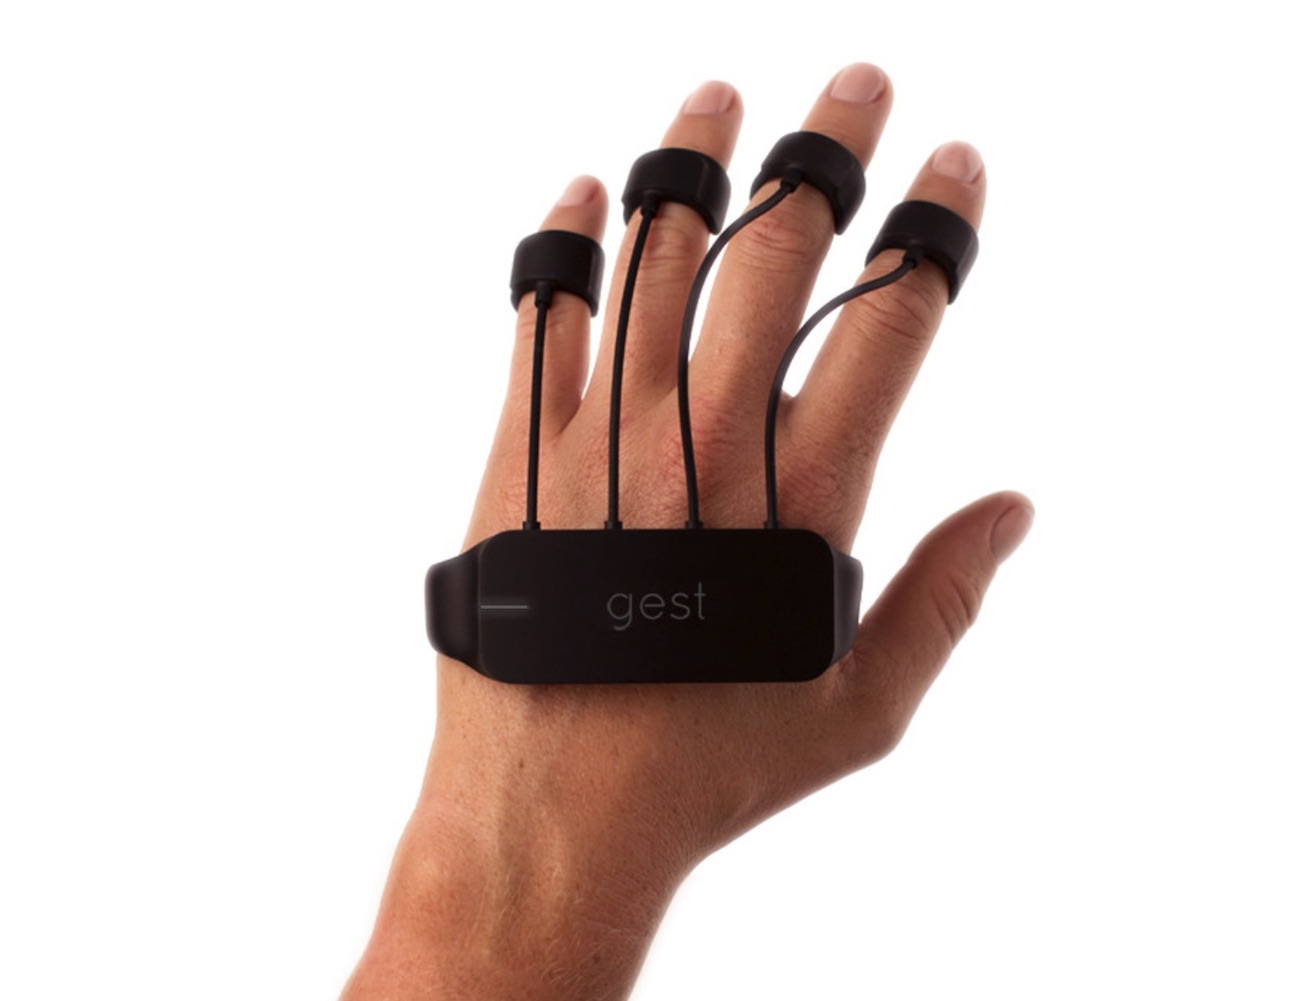 Gest – The Gesture Controlled Wearable